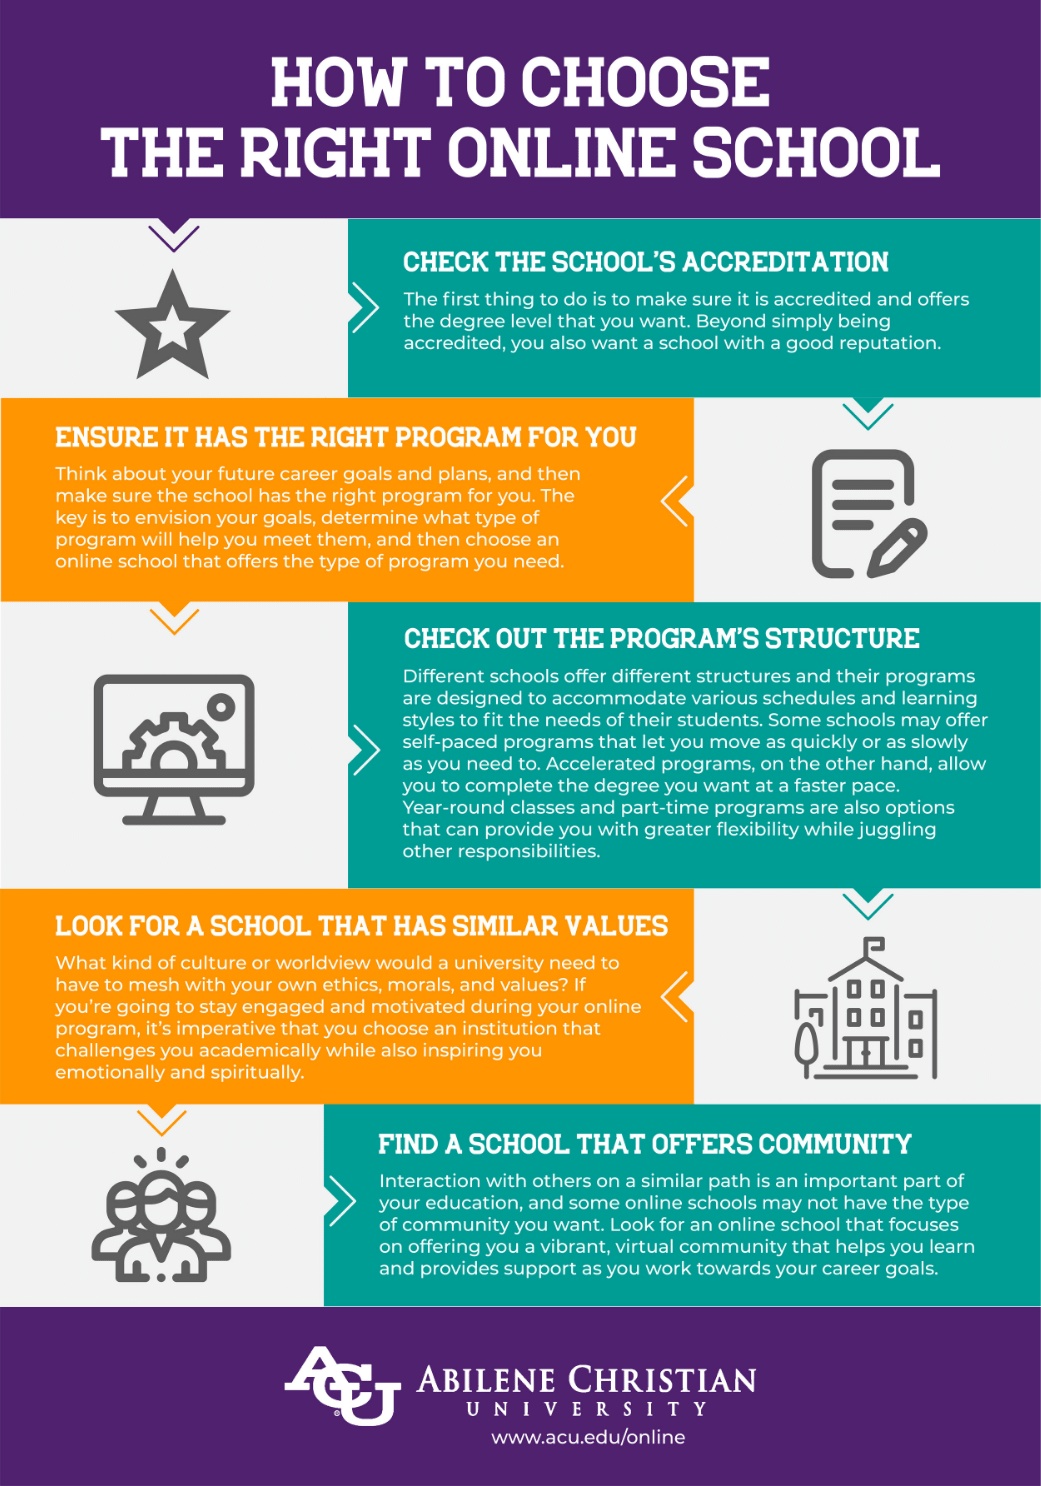 how to choose the right online school infographic